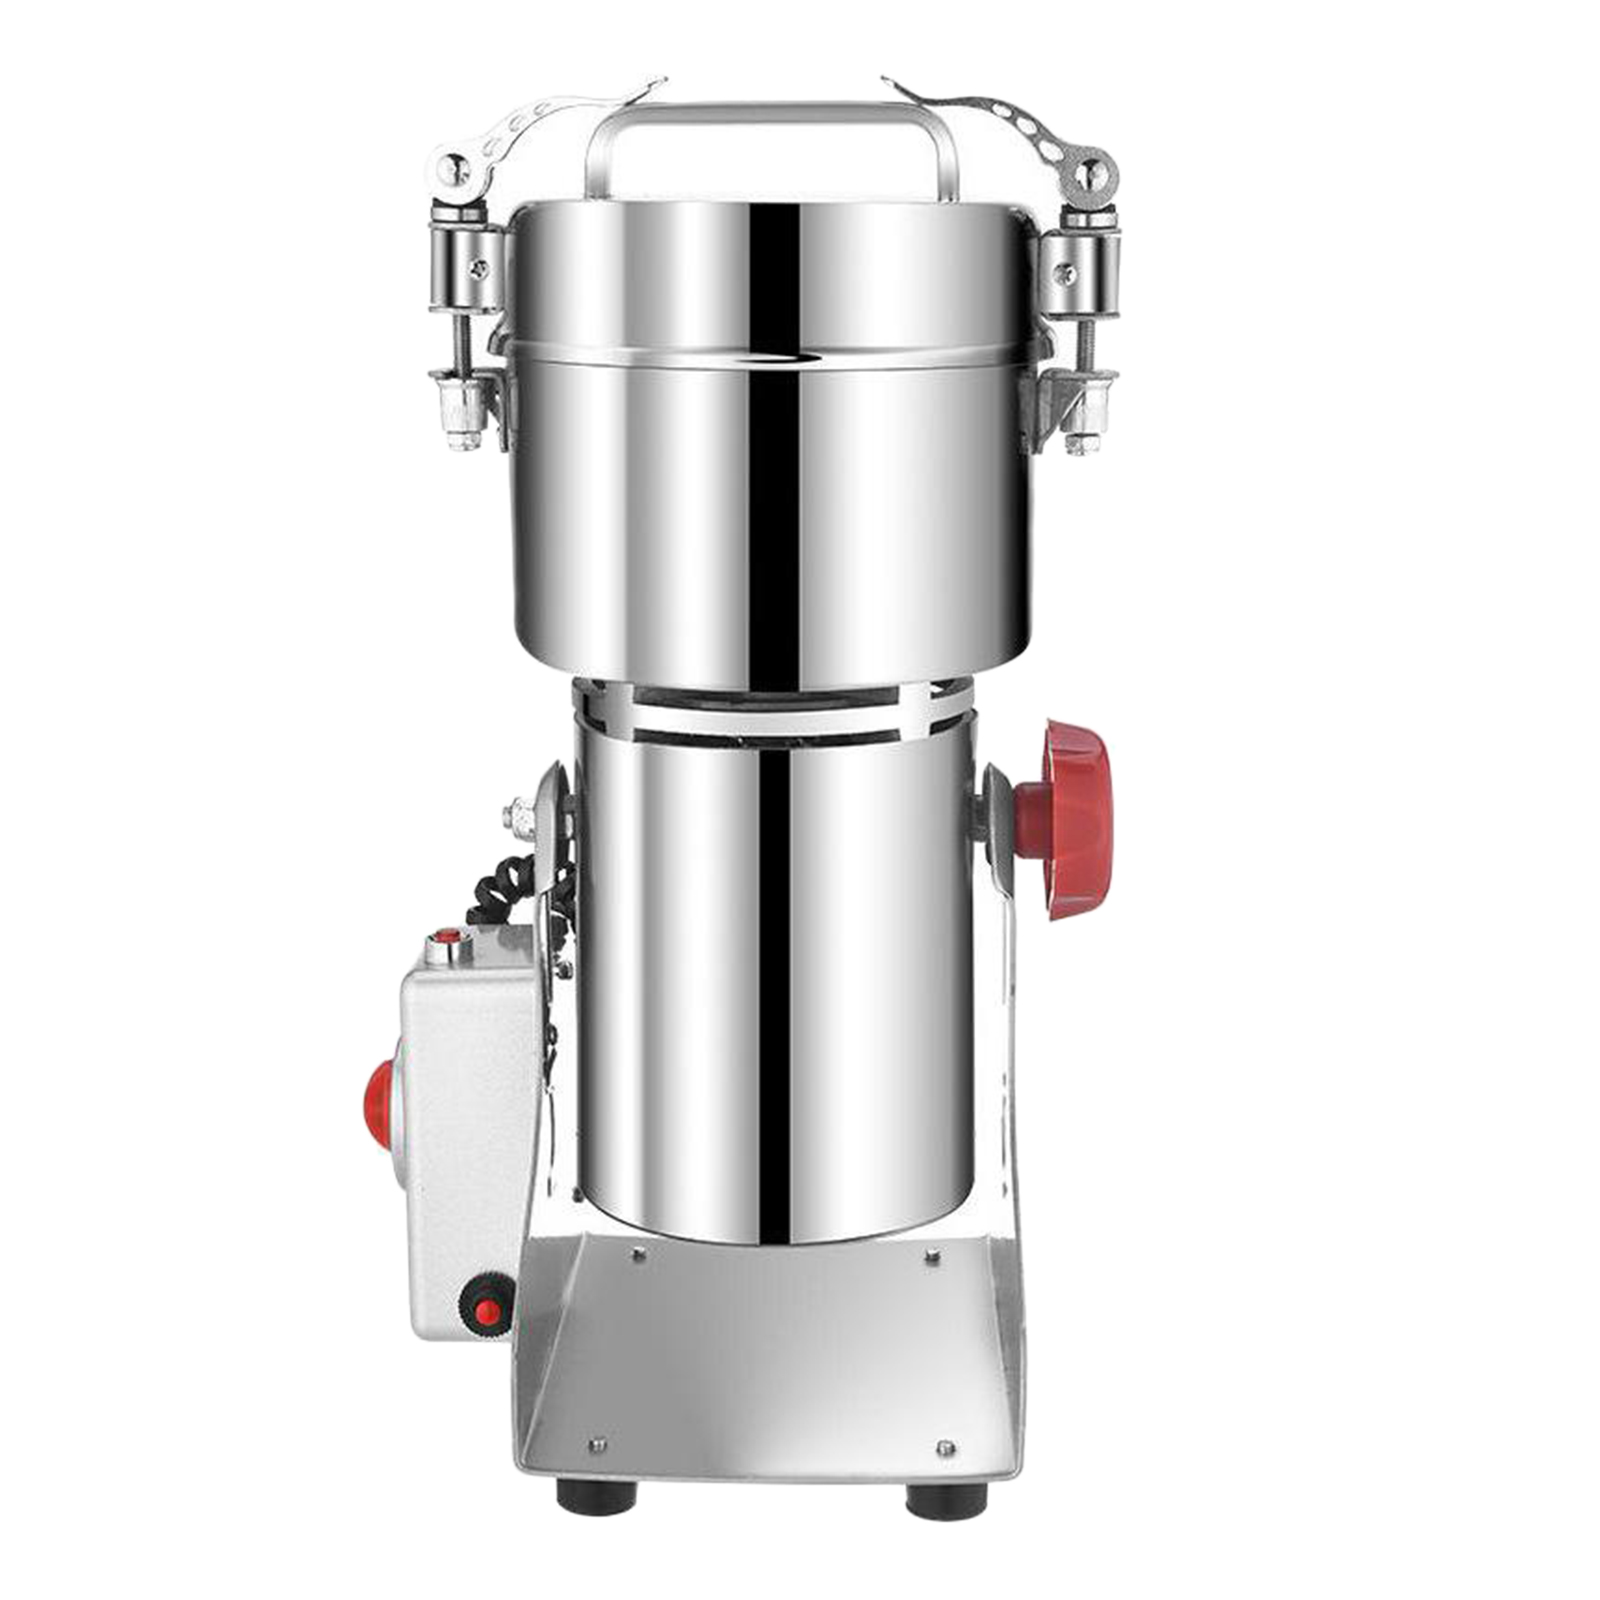 Stainless Steel Electric Coffee Grinder Machine Grain Spices Mill Medicine Wheat Flour Mixer Dry Food Grinder for Home Office